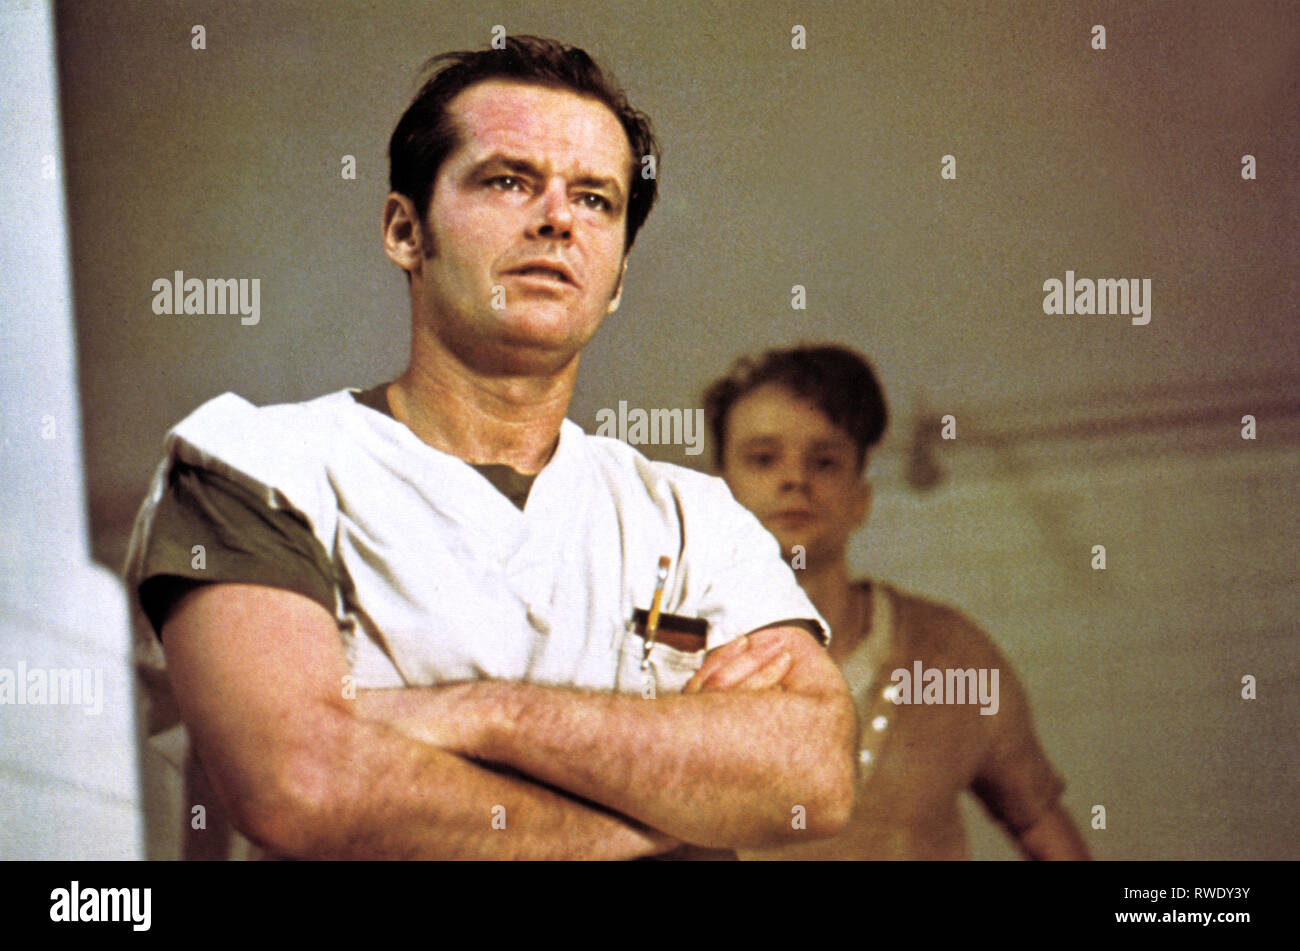 JACK NICHOLSON, ONE FLEW OVER THE CUCKOO'S NEST, 1975 - Stock Image